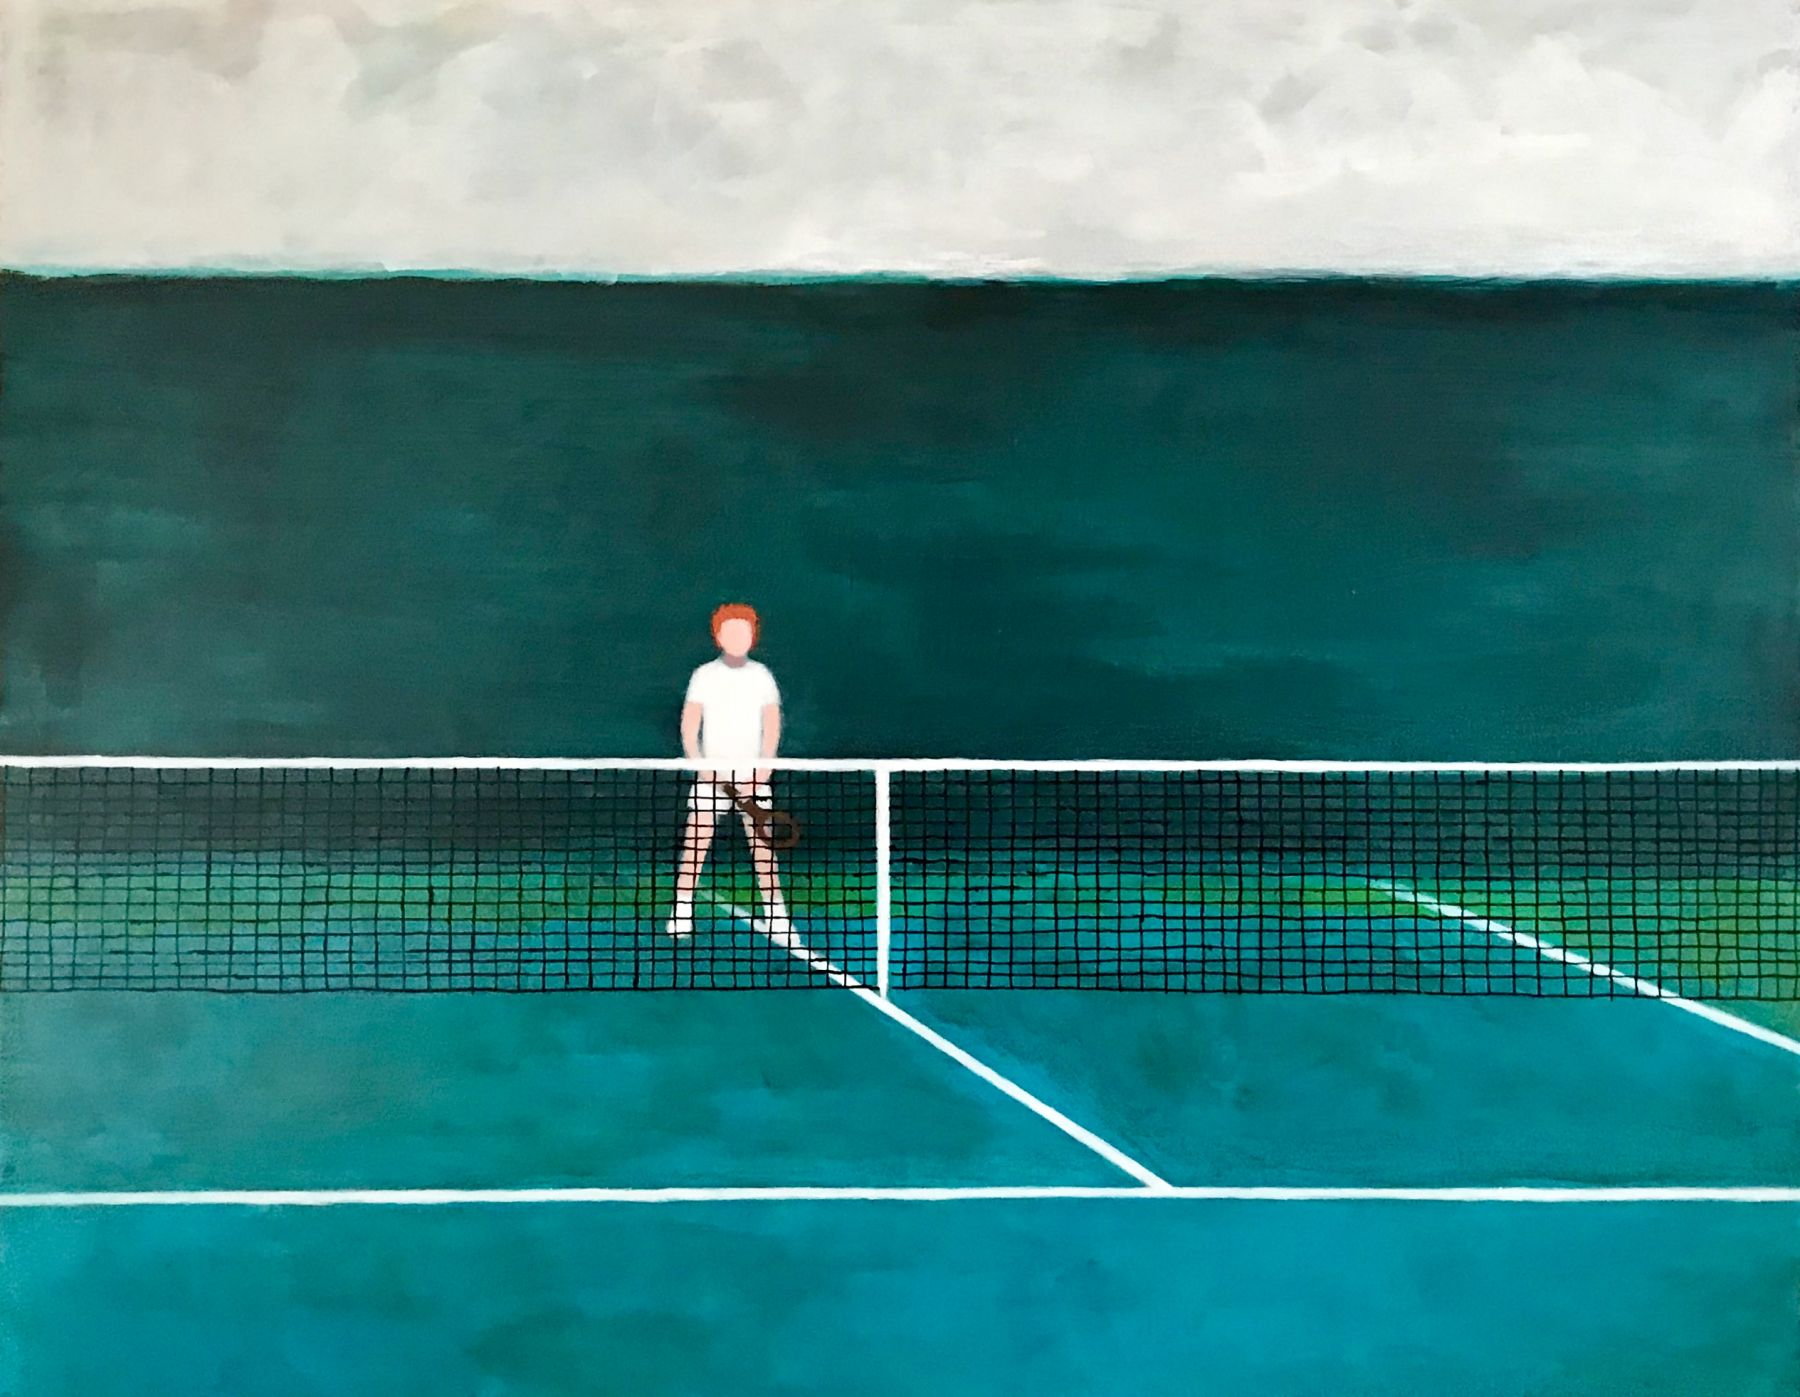 A painting by Ayse Wilson depicting a man playing tennis from the opposite side of the court with a net in front of him